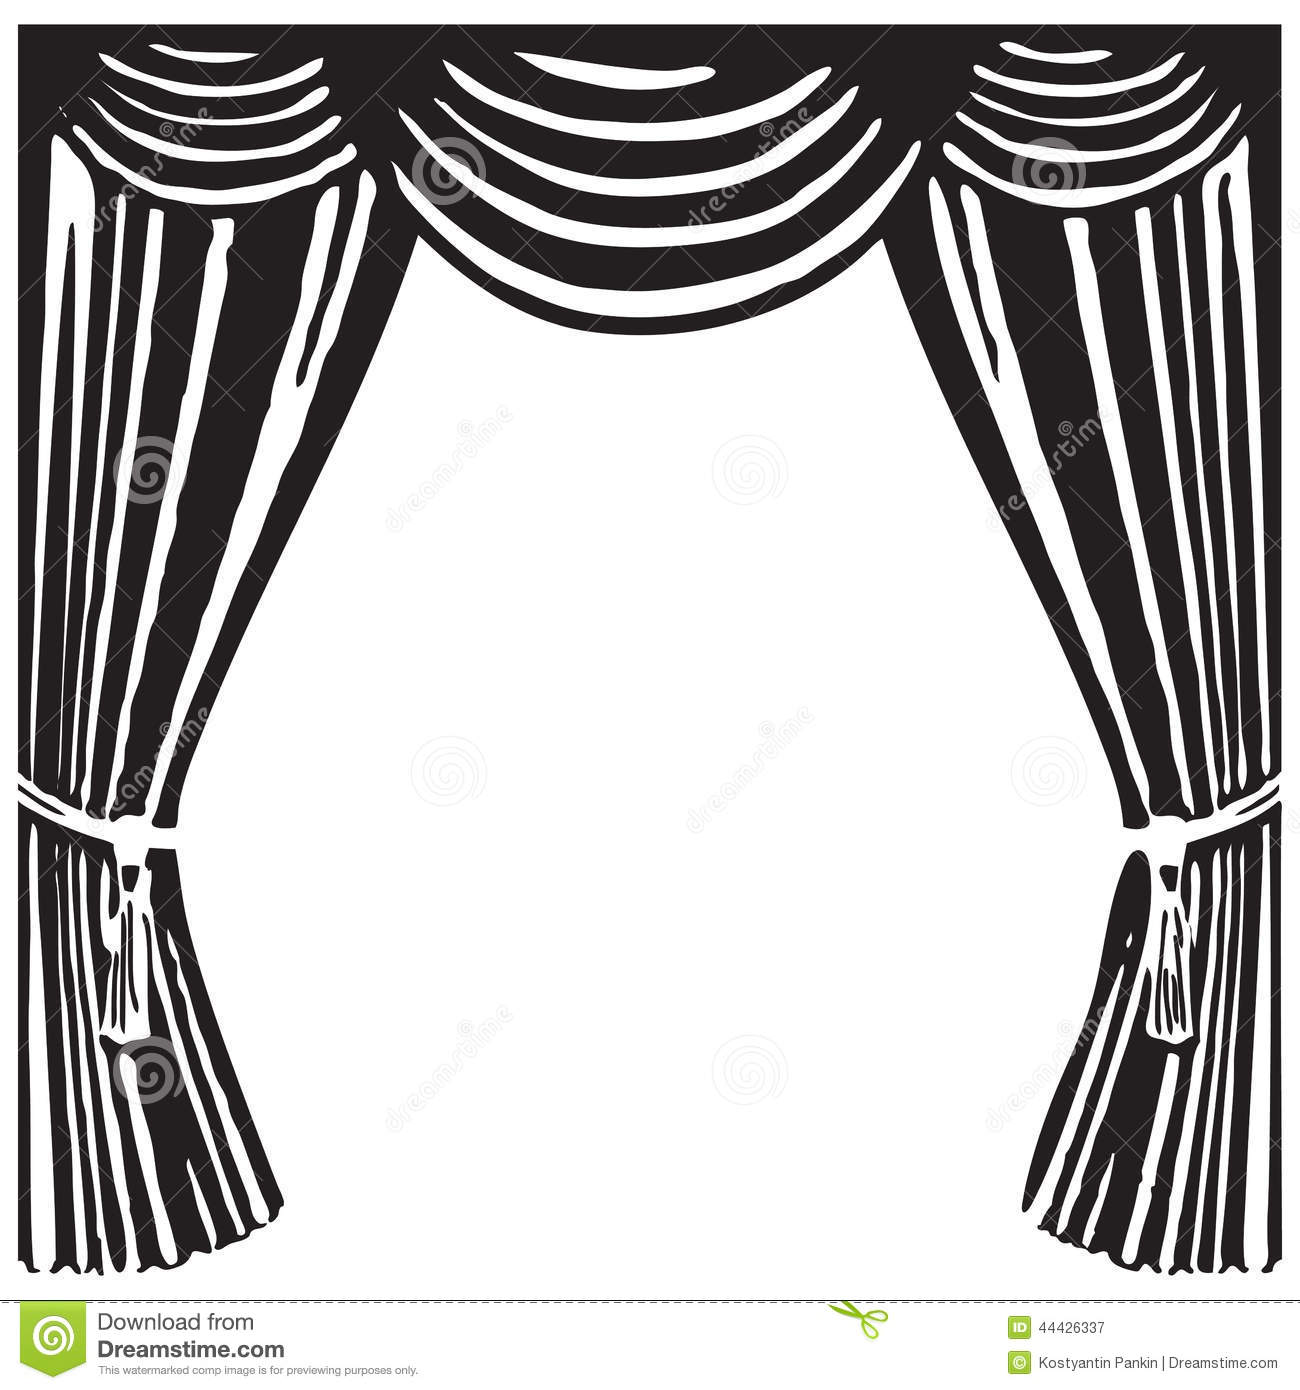 Curtain clipart black and white White Stage Theater Black Clipart